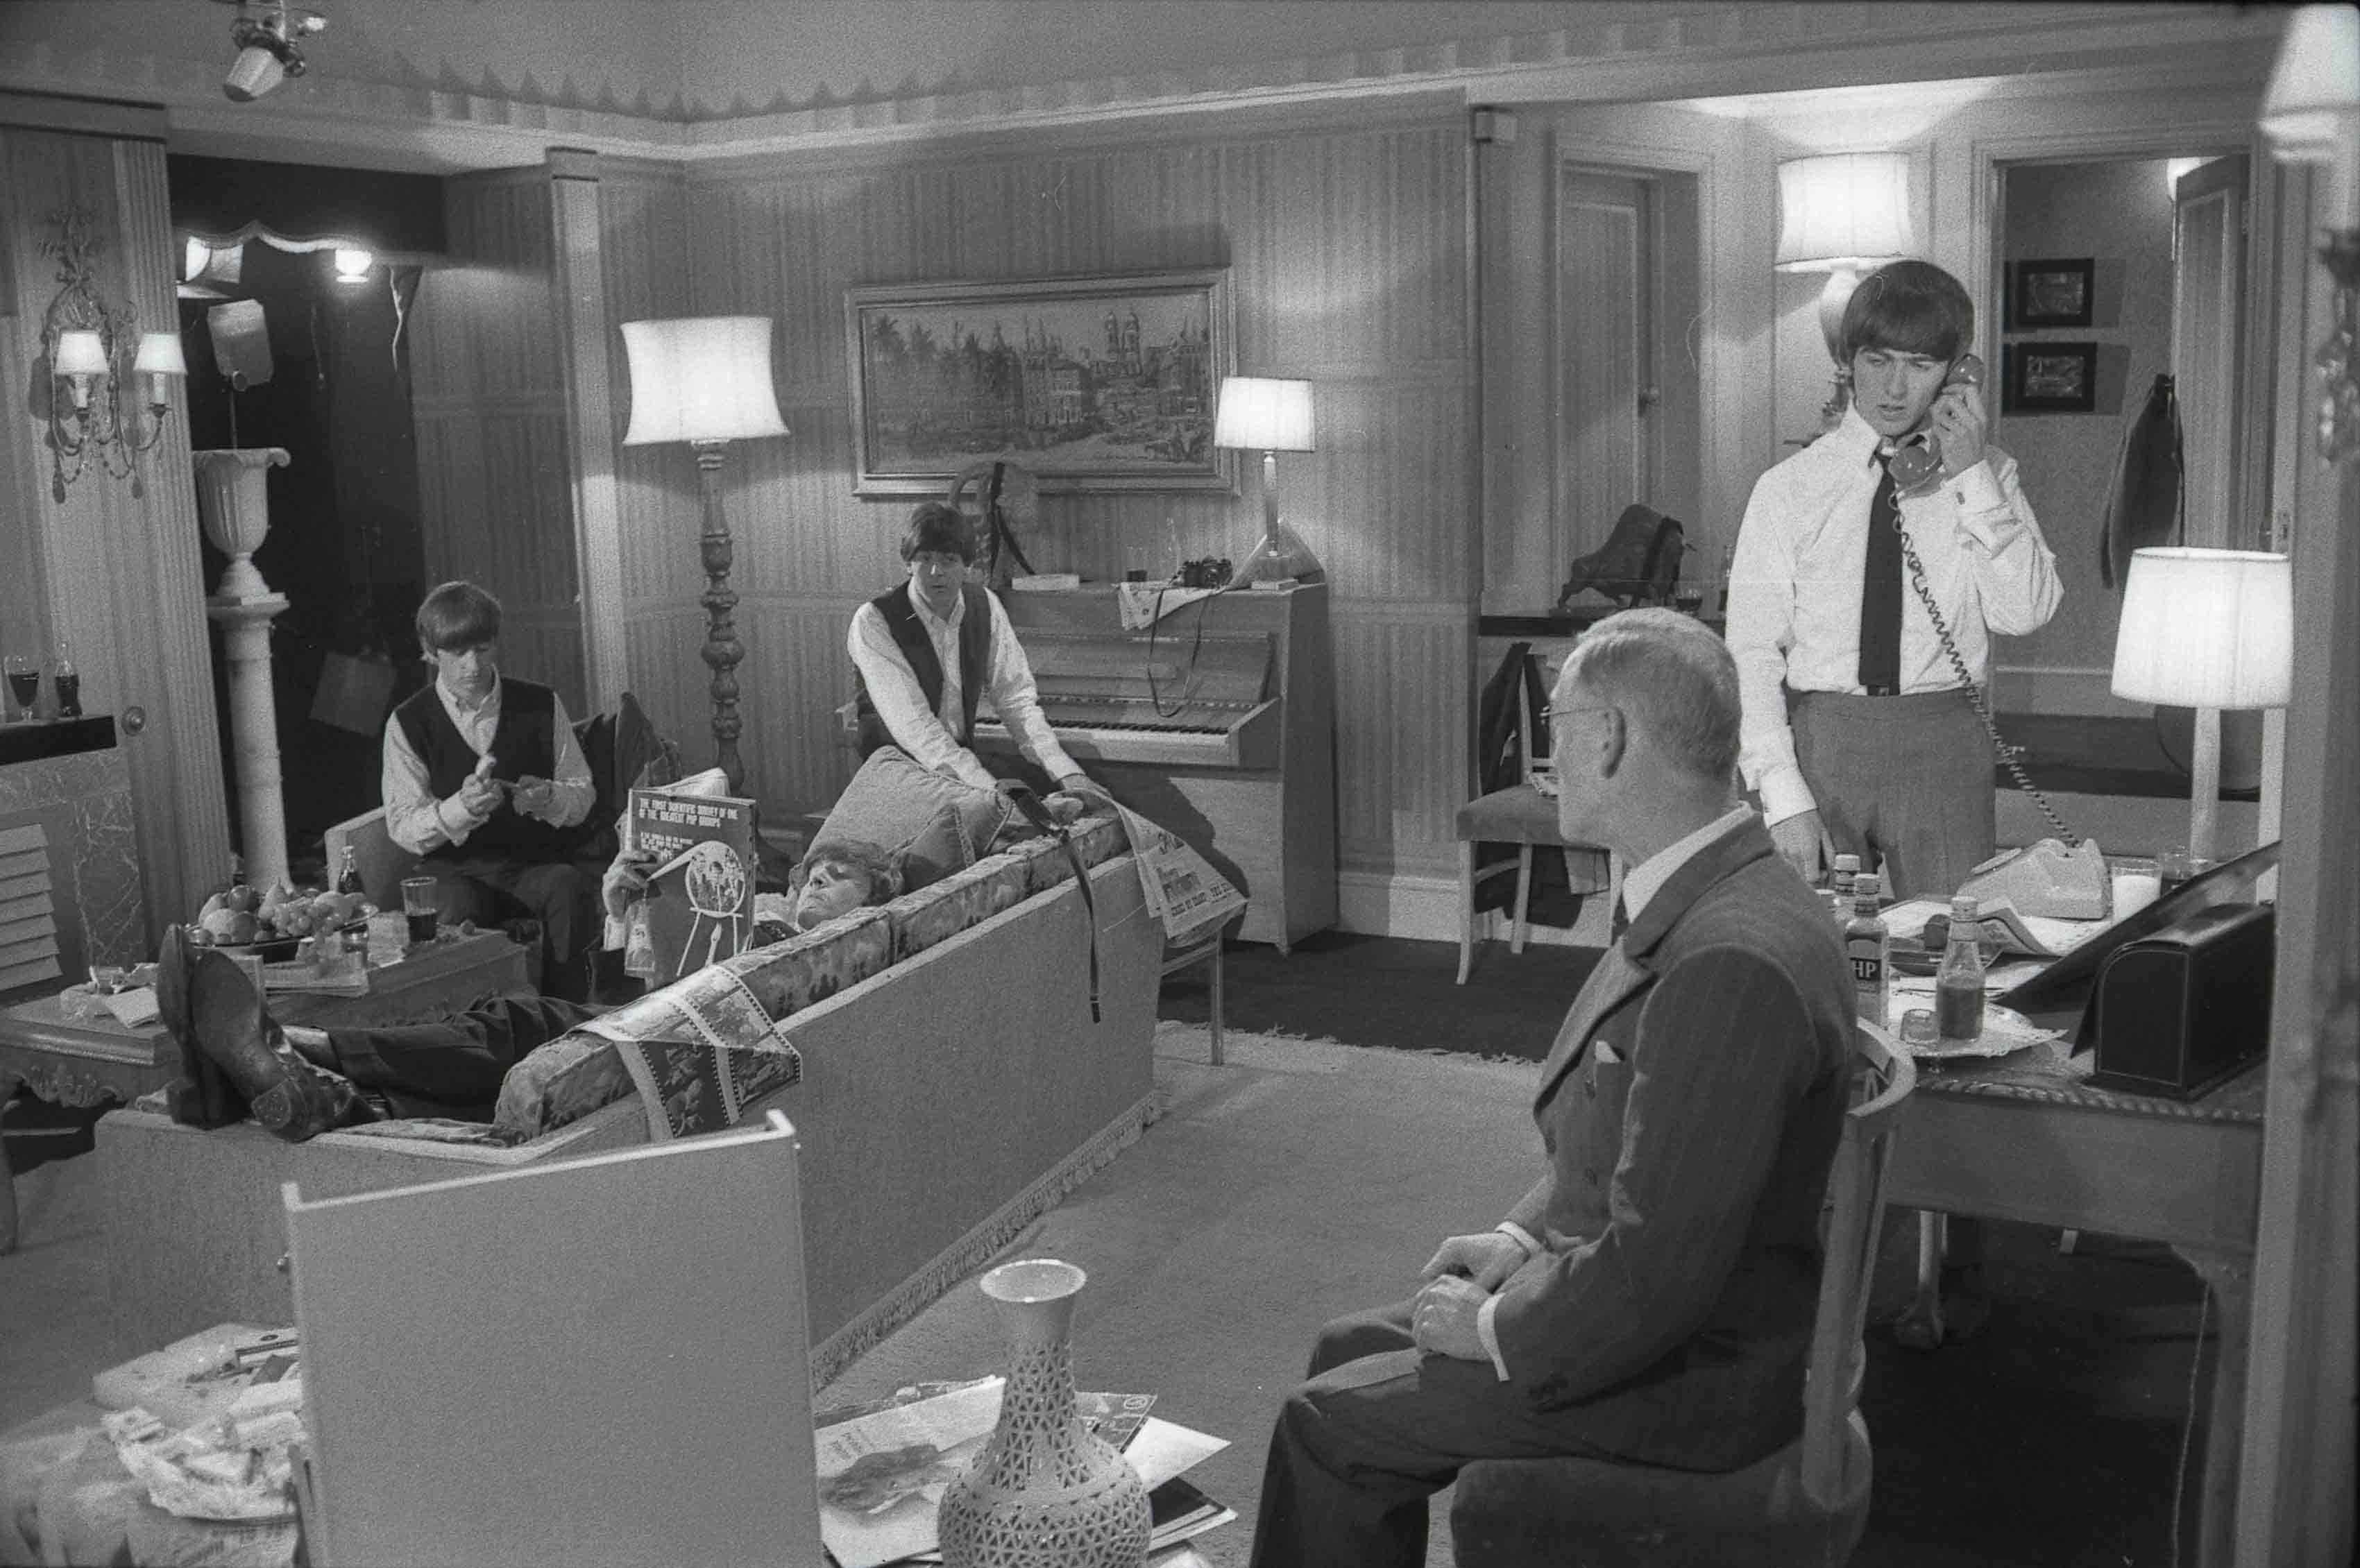 The Beatles waiting in a hotel suite in a still from 'A